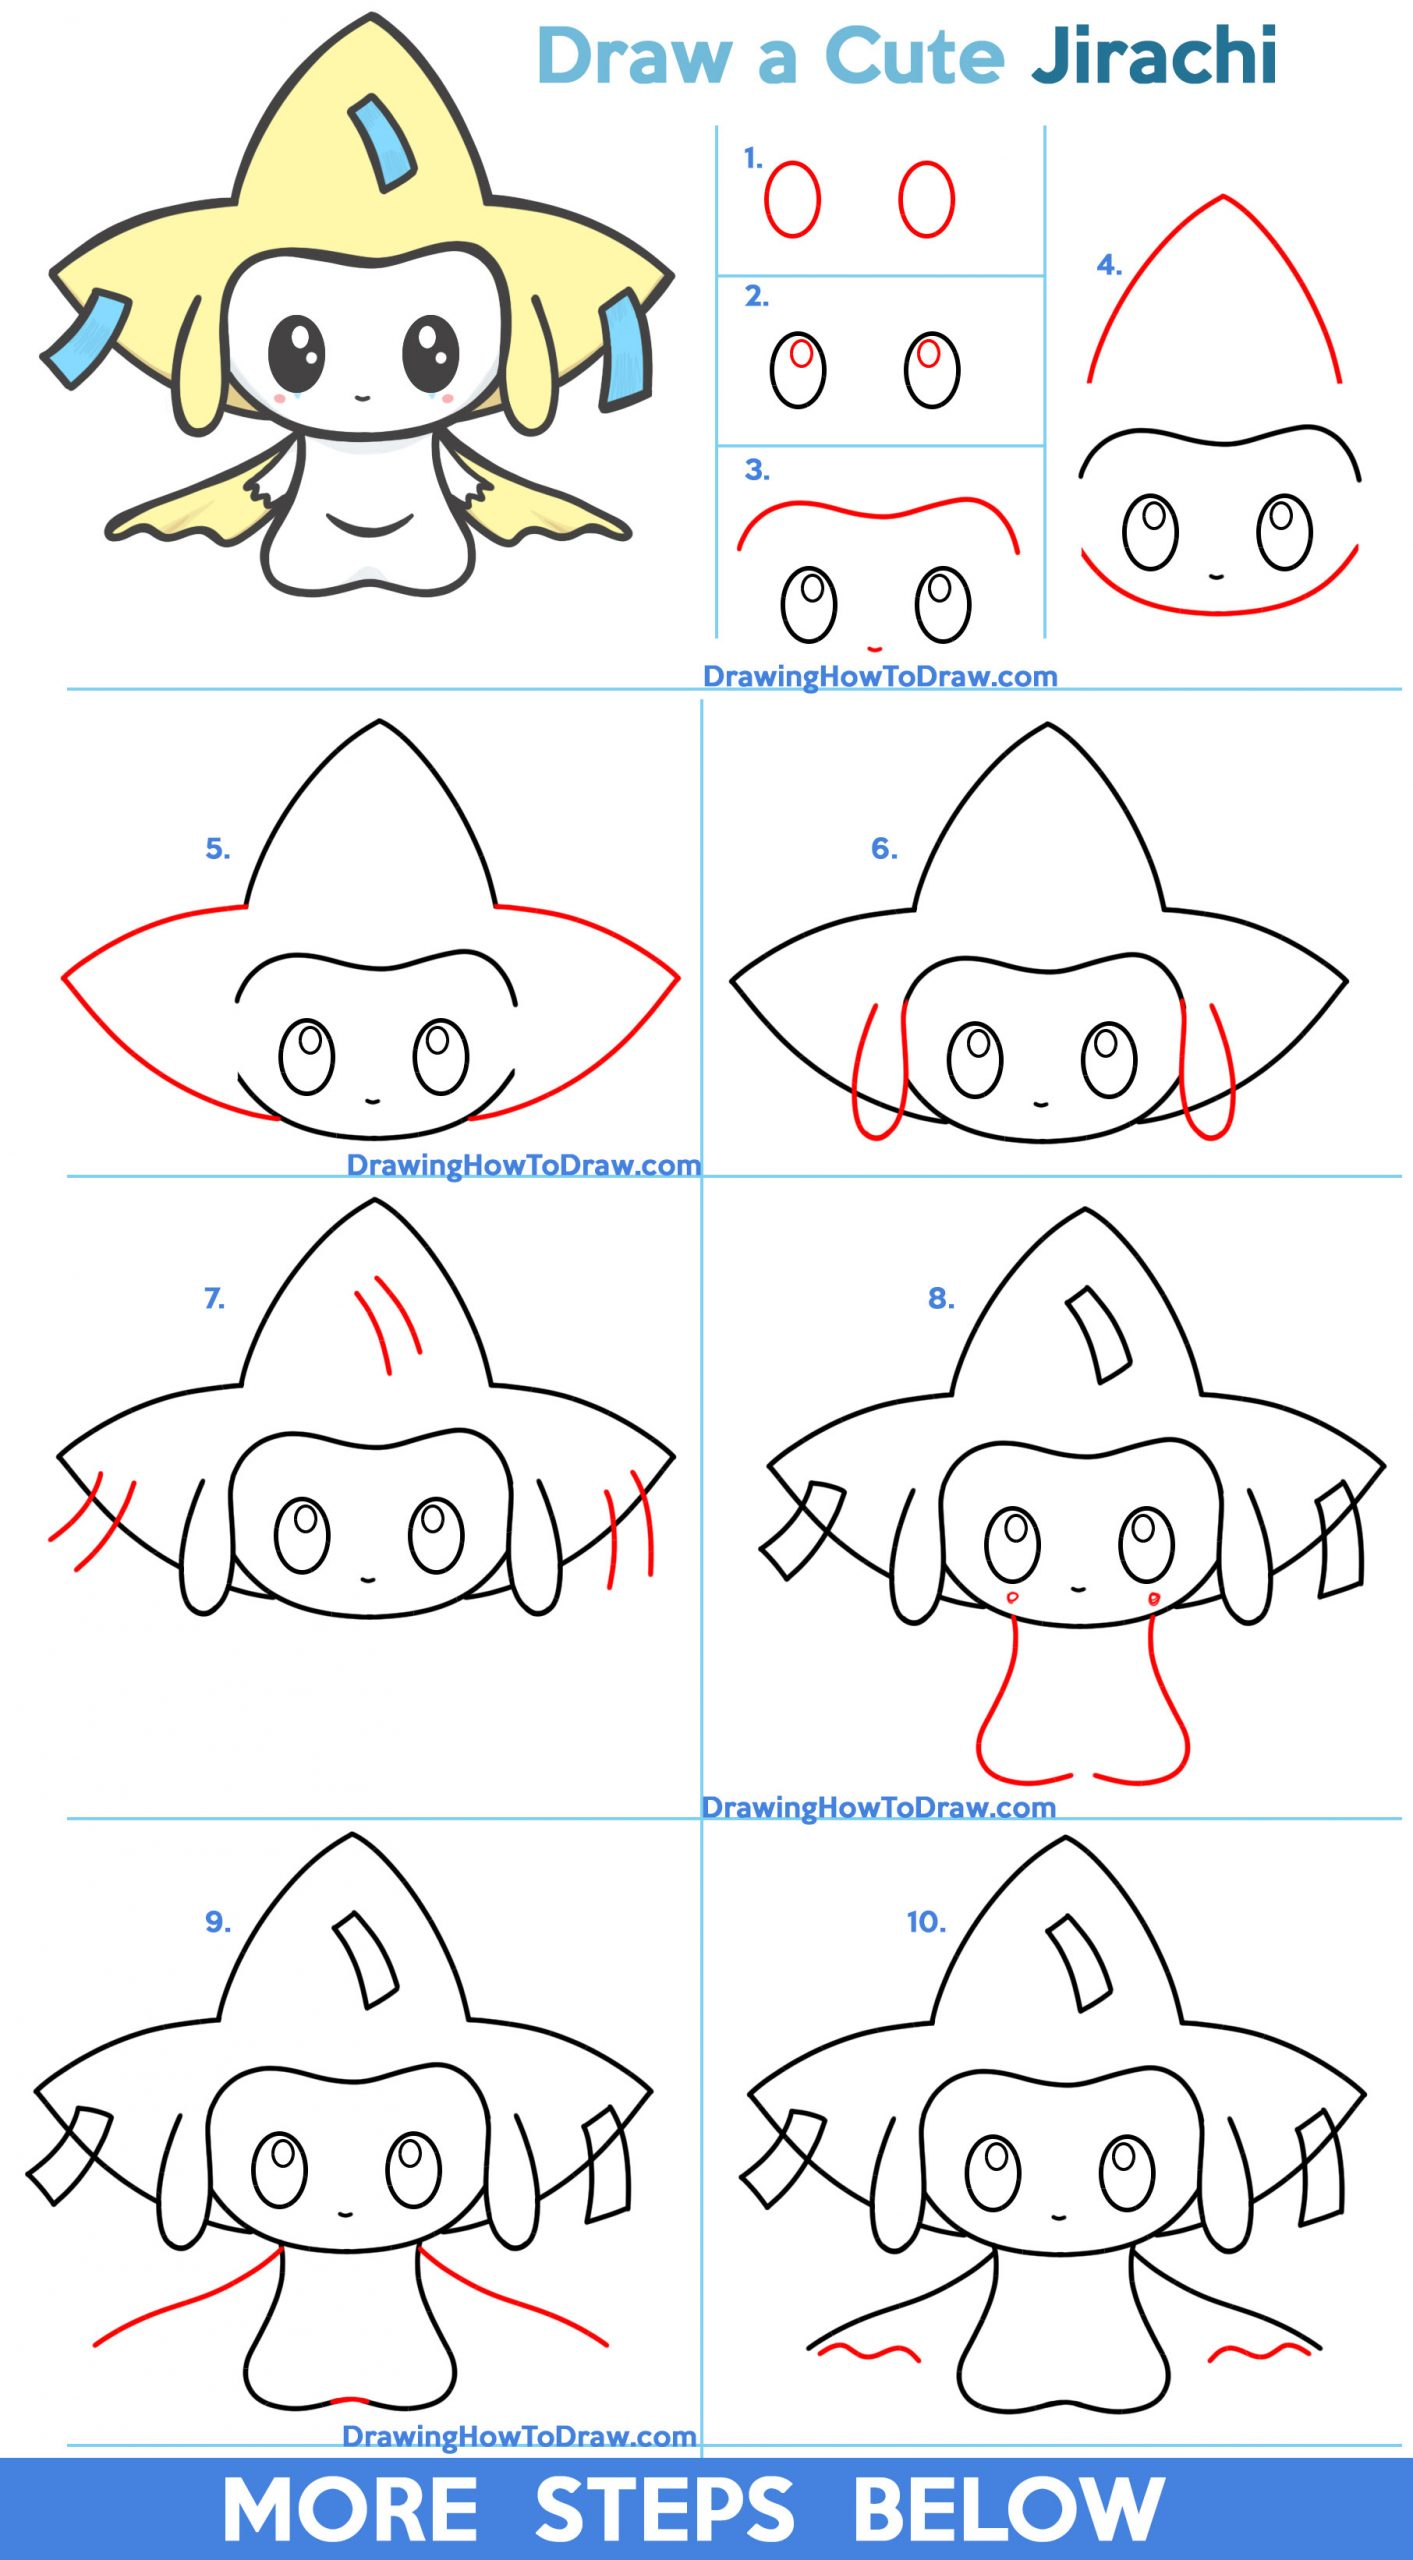 Learn How to Draw a Cute / Kawaii / Chibi Jirachi from Pokemon Easy Step by Step Drawing Tutorial for Kids